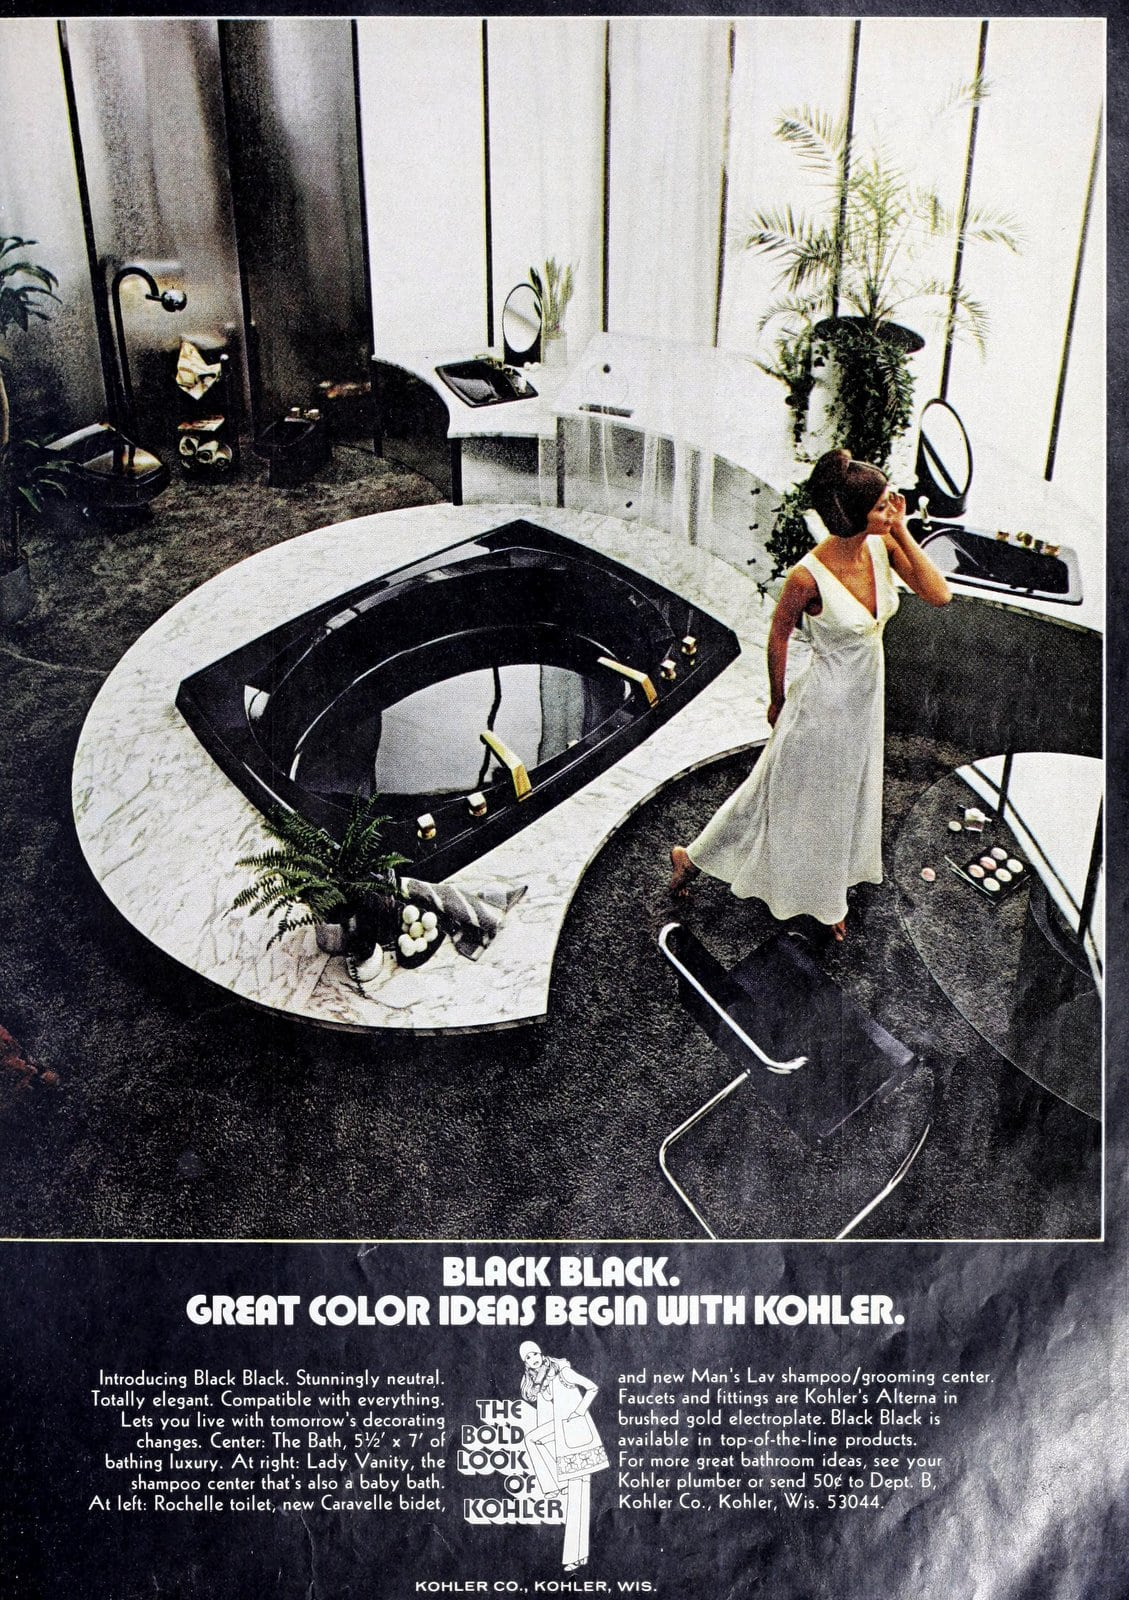 Black Black Kohler bathroom suite (1972)